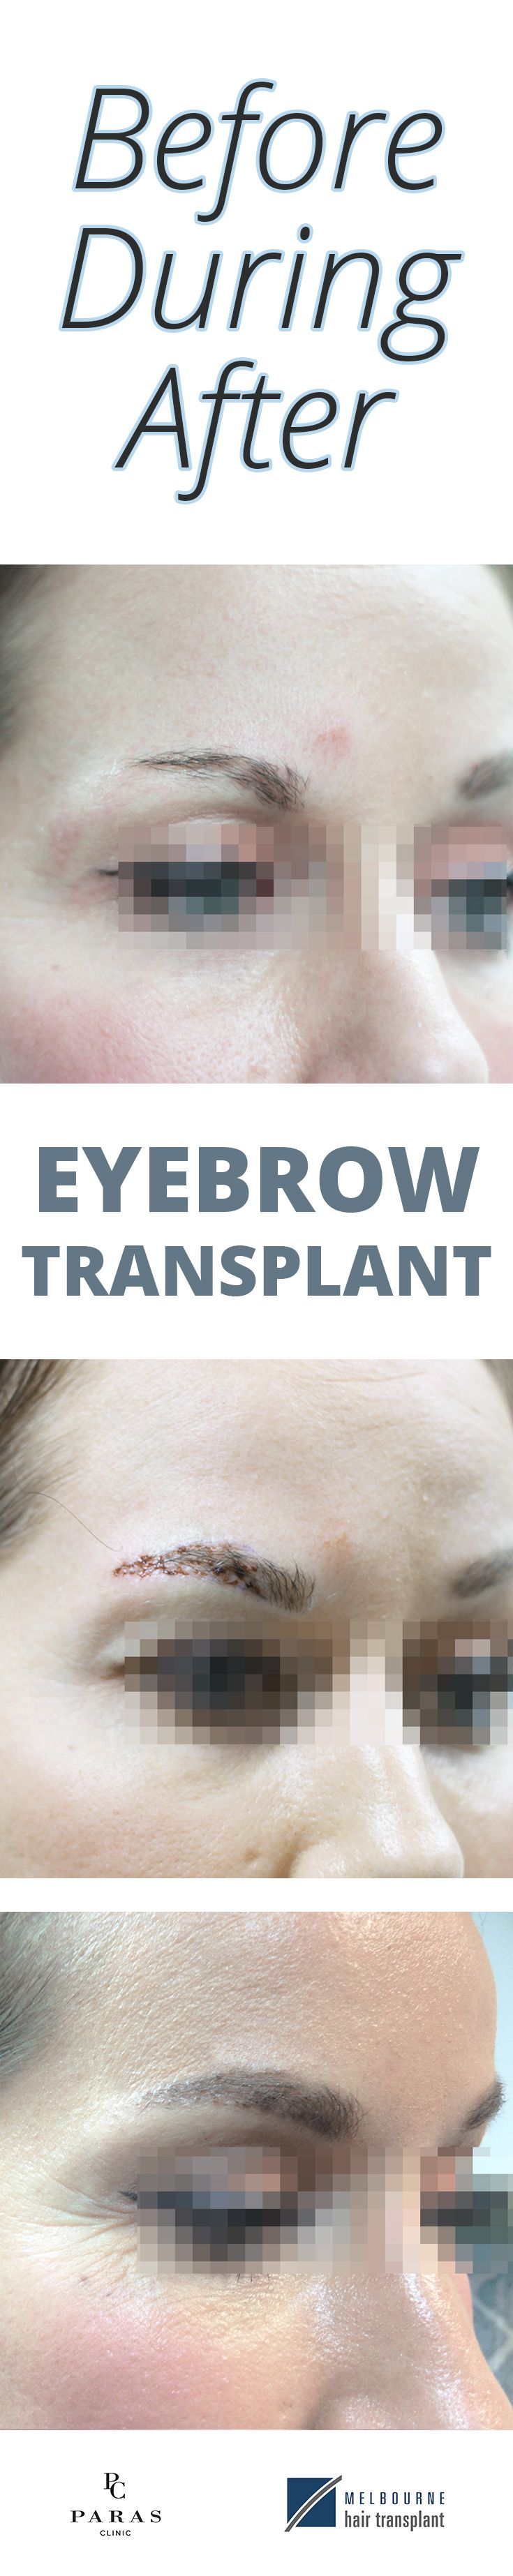 Eyebrow transplants: Before, During and After